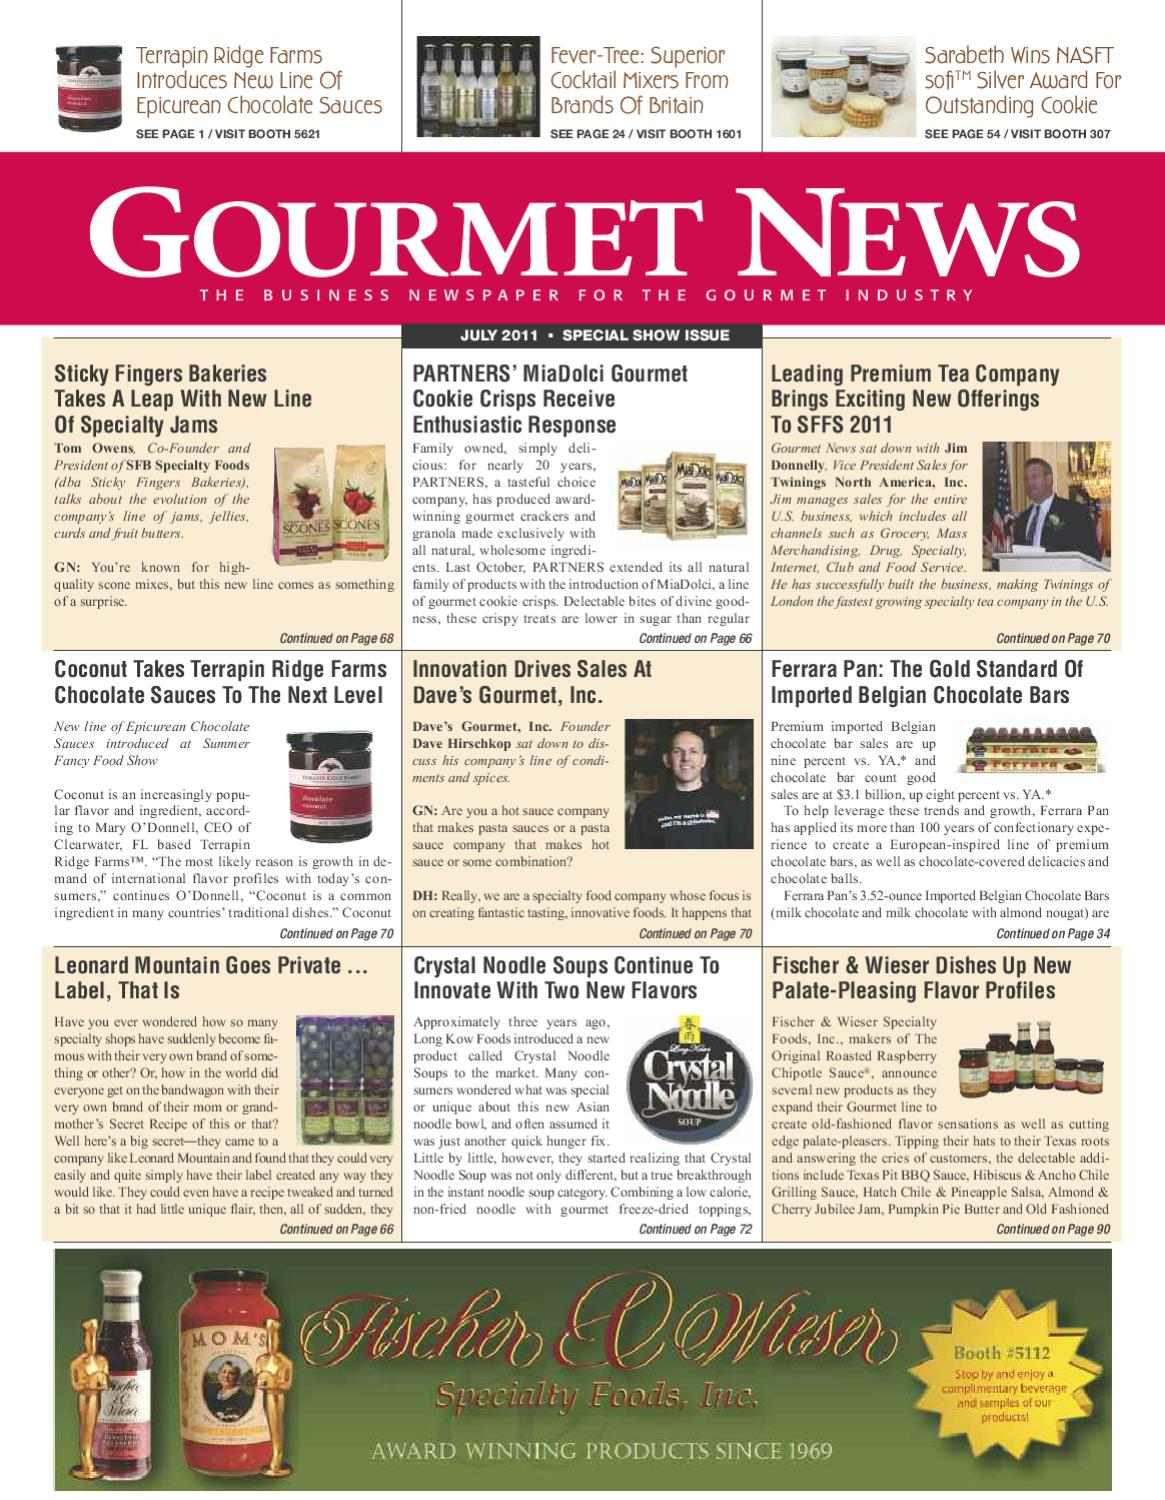 Gourmet News - Special Issue at the Summer Fancy Food Show